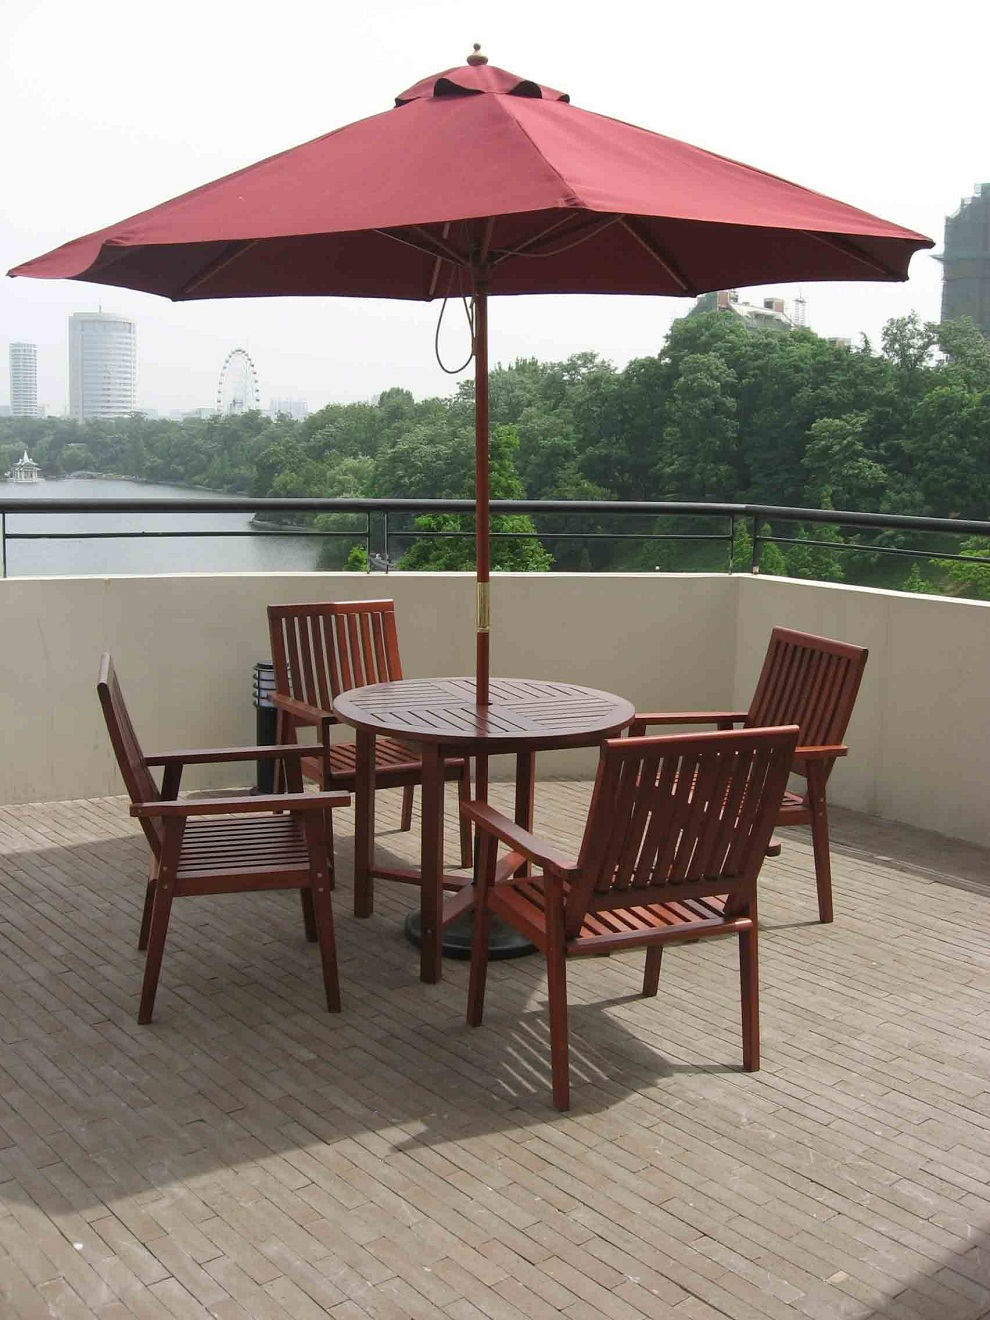 modern outdoor ideas furniture umbrella half base sunbrella round brilliant patio tables with umbrellas side table small inch antique white accent nautical tures tiffany inspired